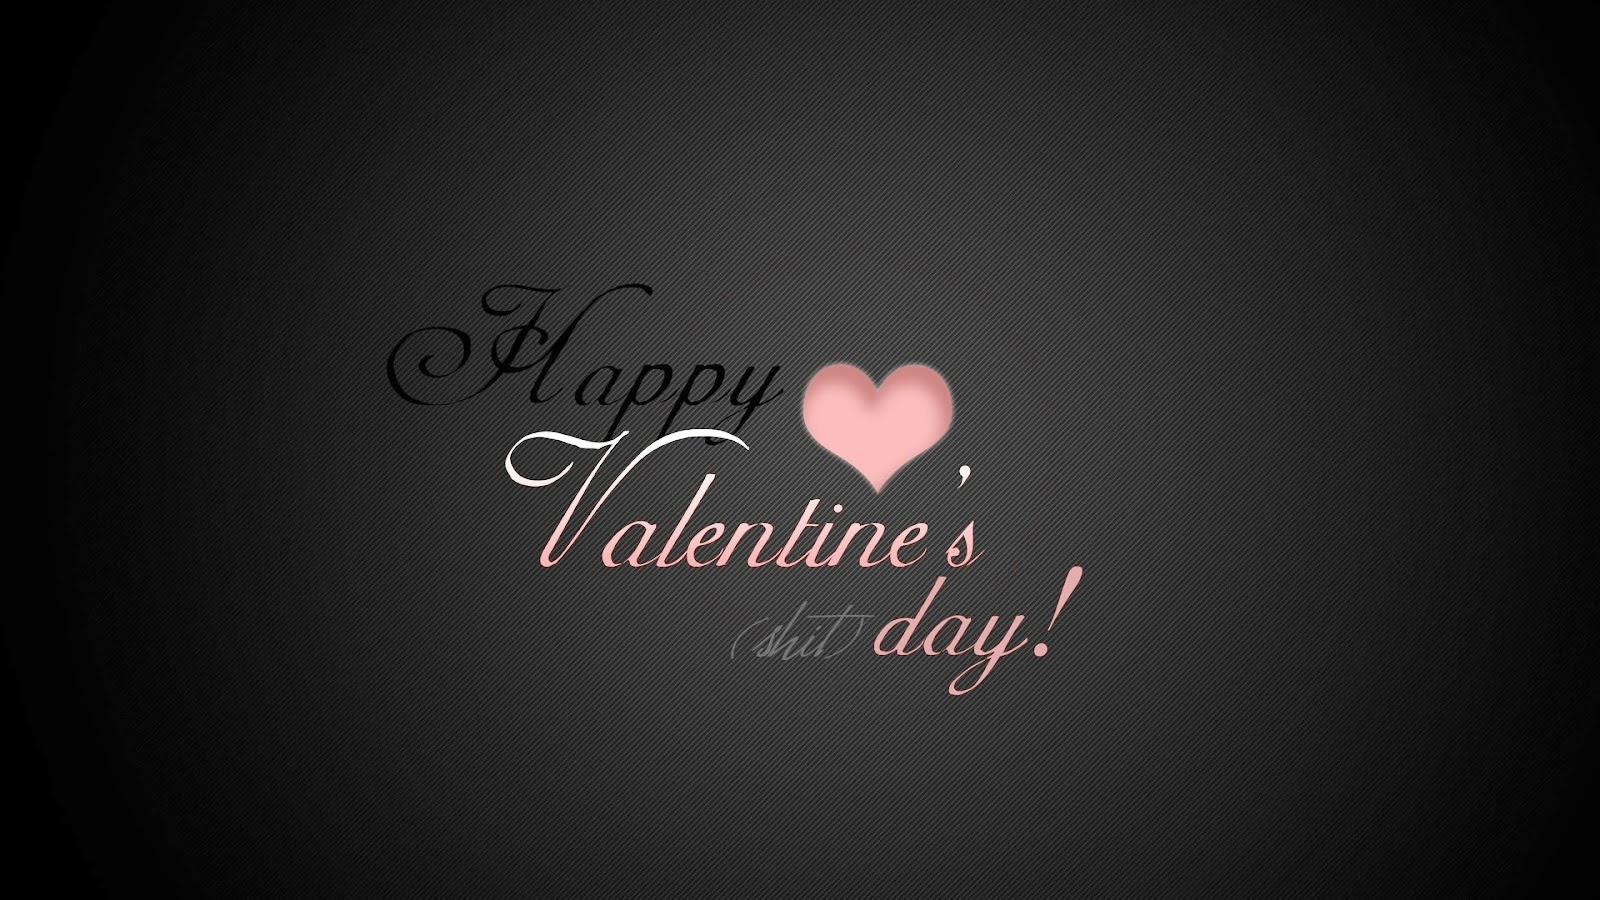 Happy Valentines Day Messages Sms Wishes Quotes For Friends Colleagues thumb